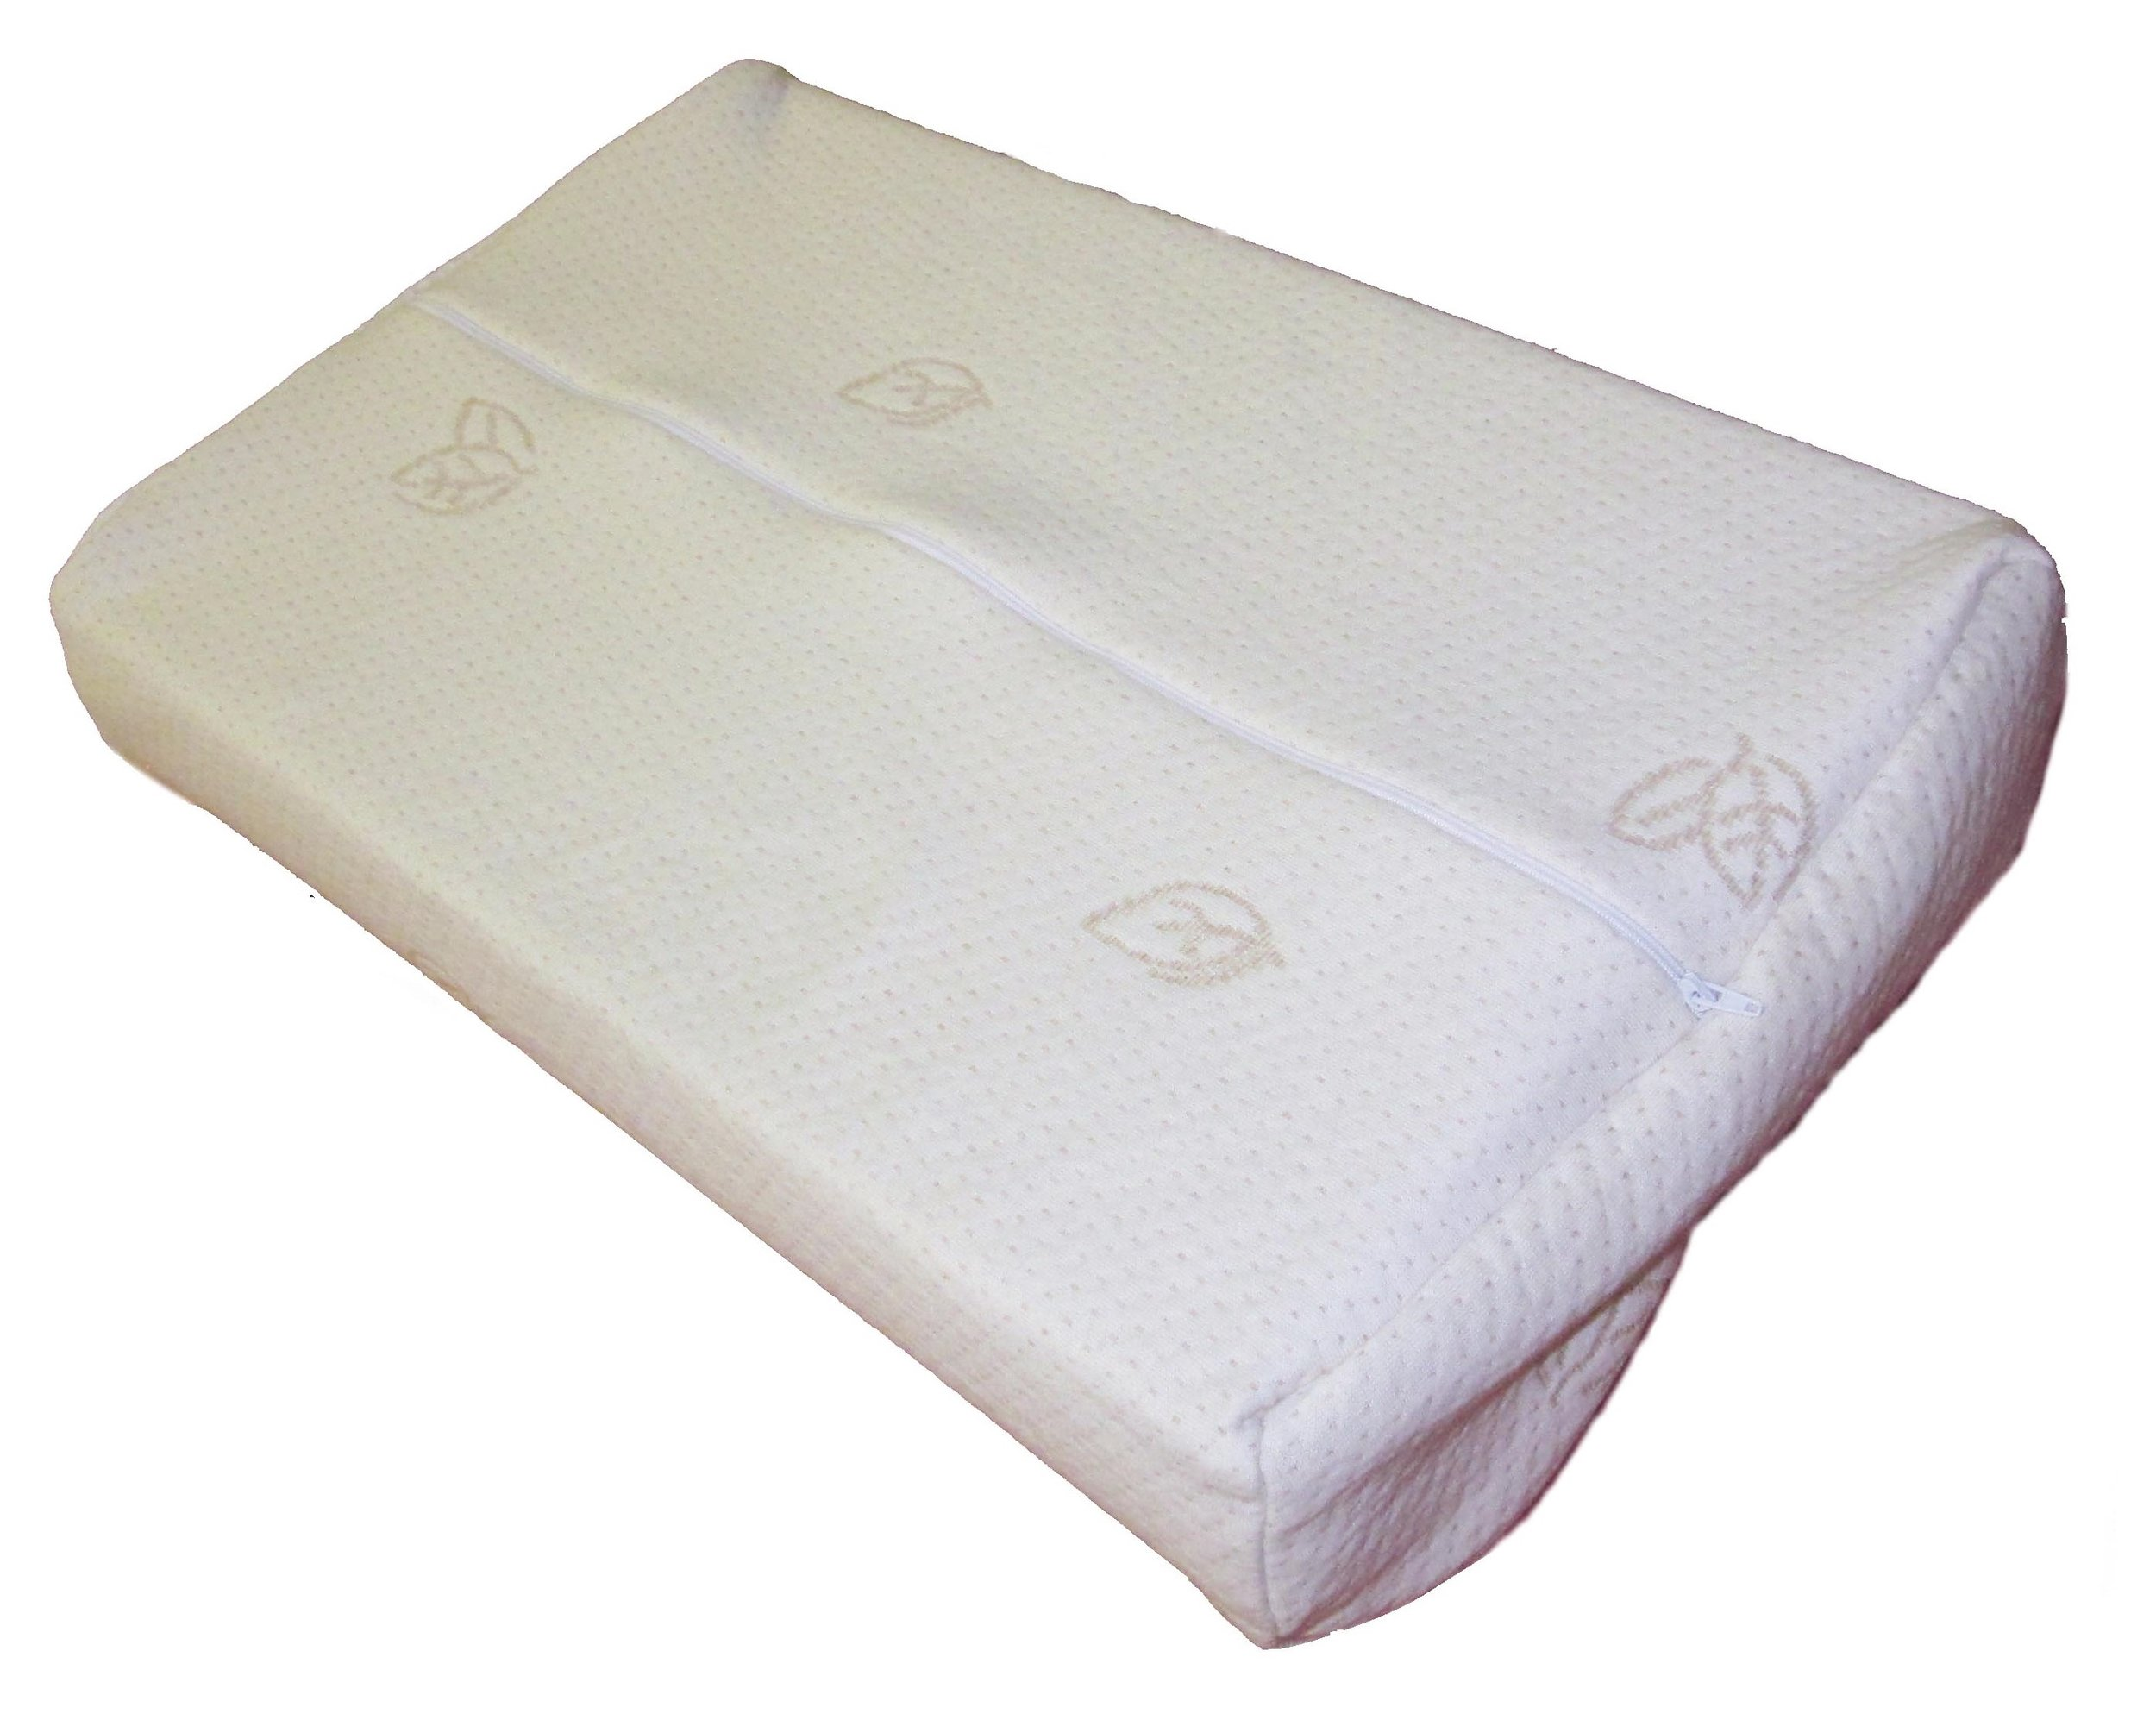 contour pillow with zippered organic cotton cover